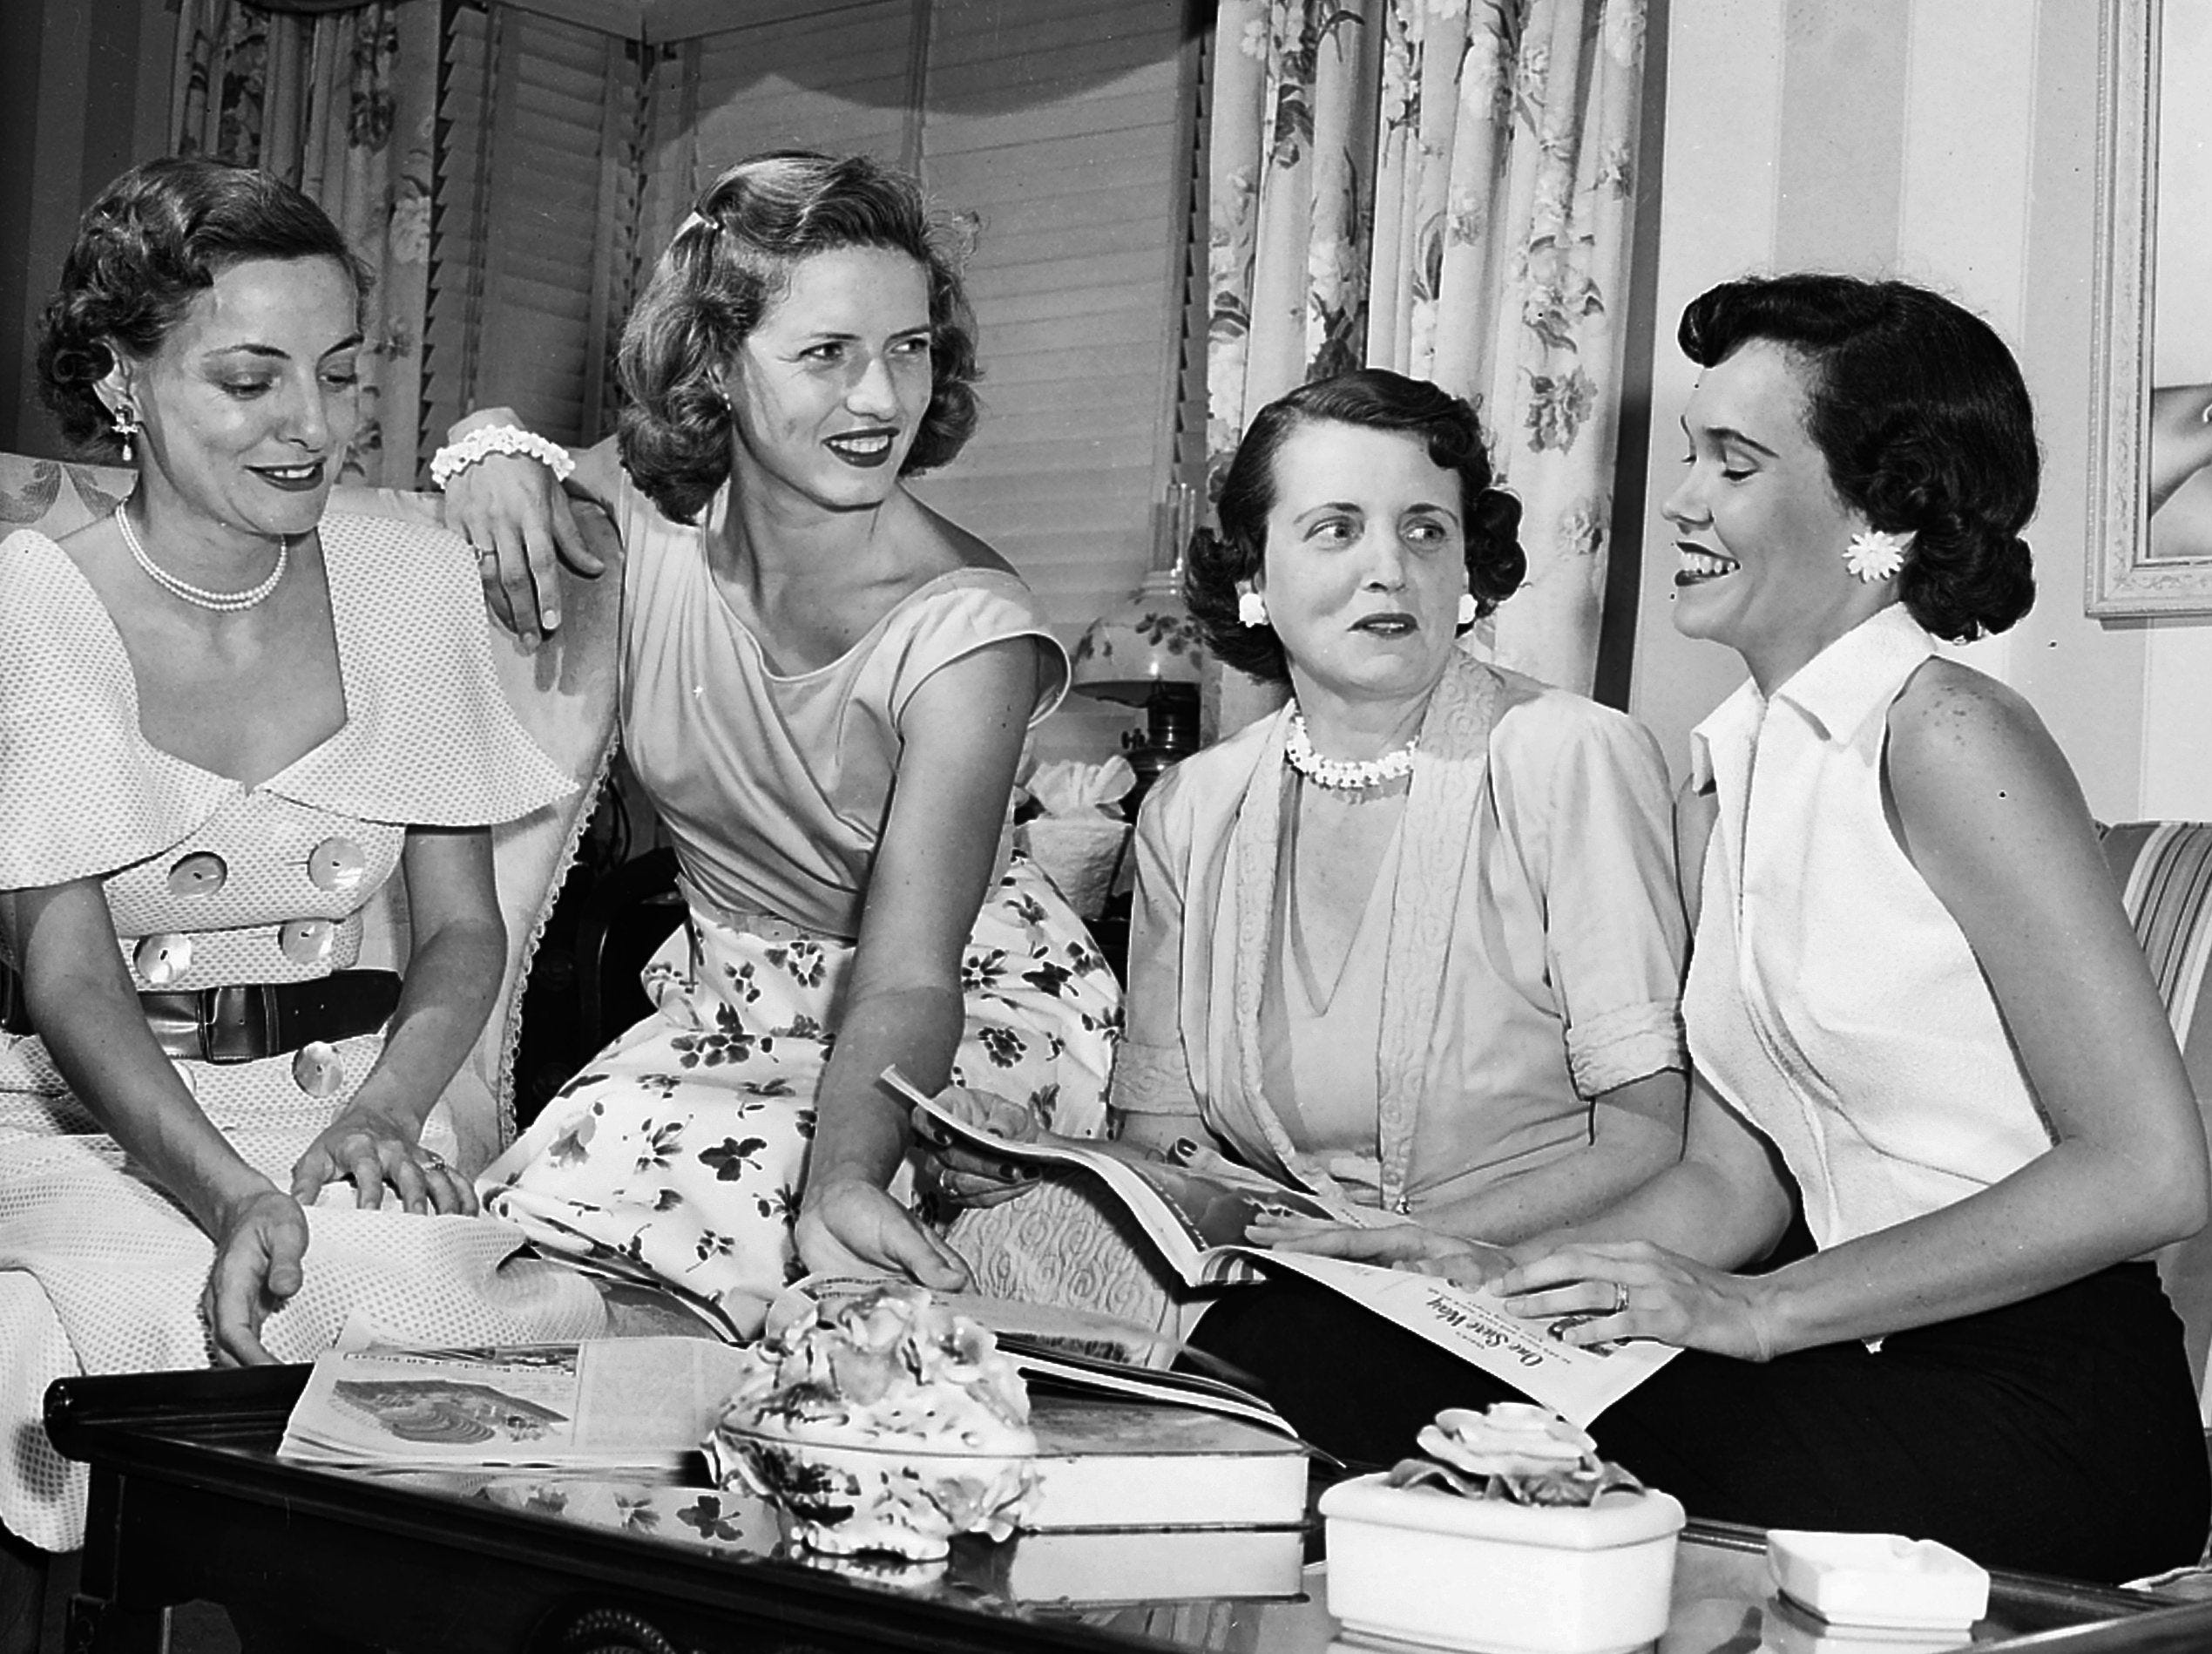 Discussing plans on 9 June 1953 for an August fashion show to be given by the Memphis Christian College Alumnae Club are new officers of the group. They are, from left, Mrs. David Cartwright Jr., president; Mrs. Blair Wright, treasurer; Mrs. Ralph Hanger, vice president; and Mrs. Fraser Humphreys Jr., parliamentarian.